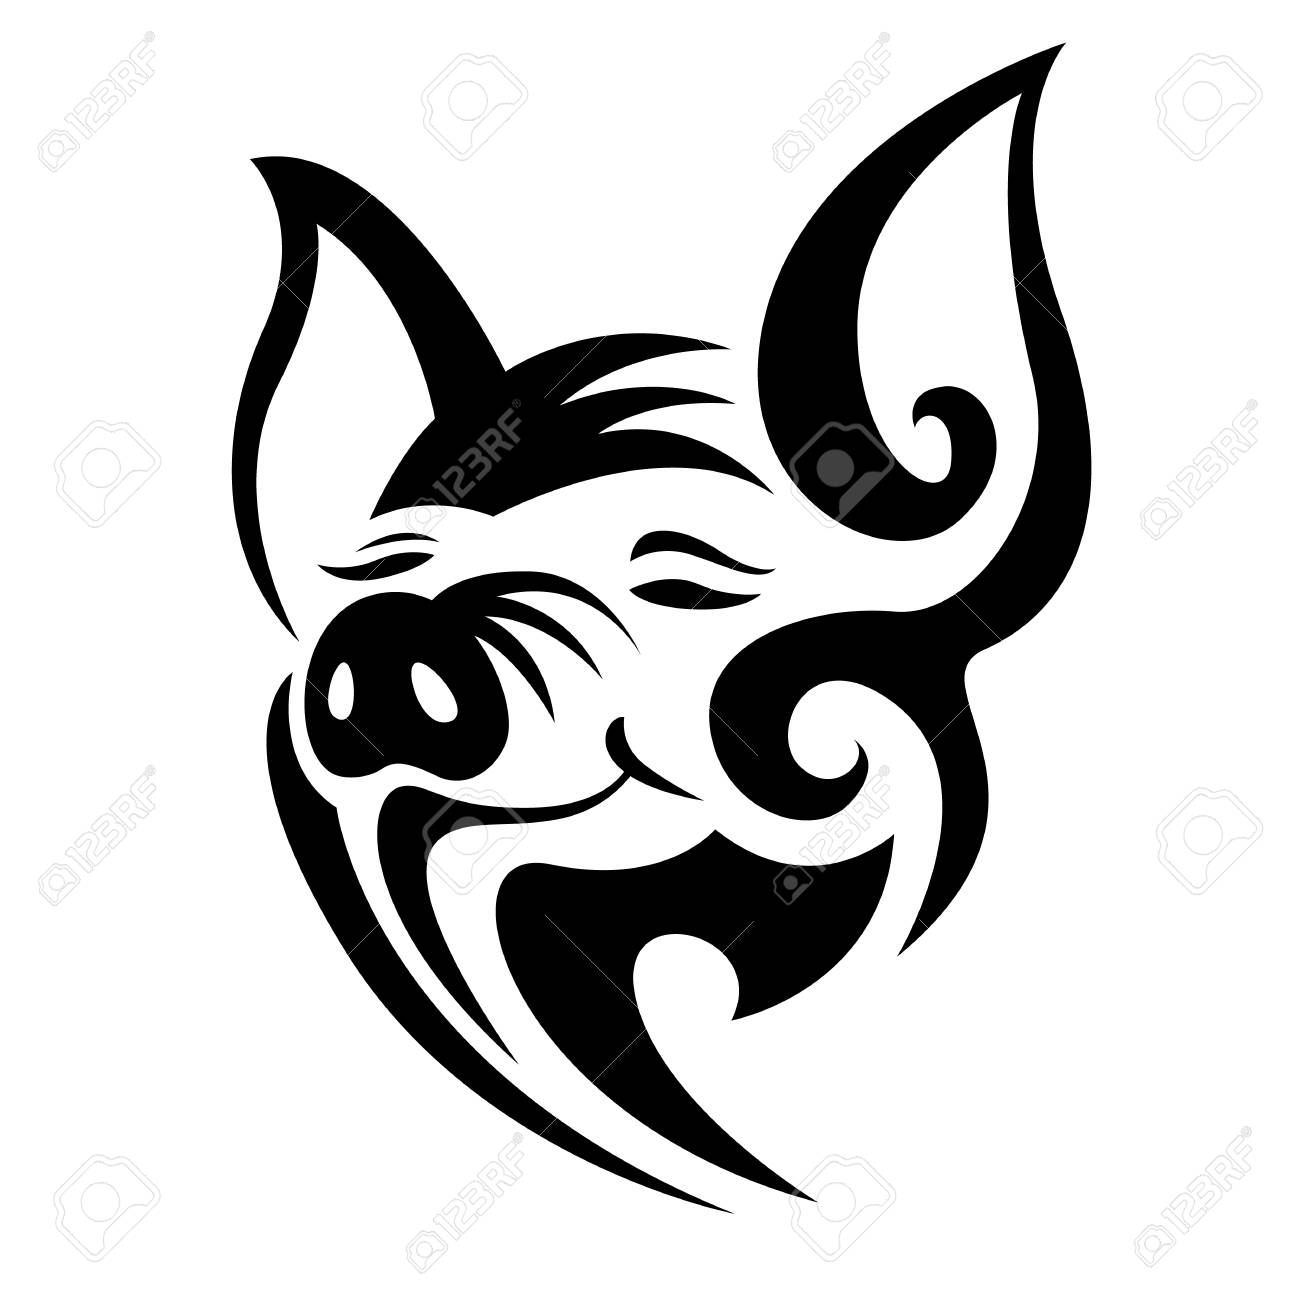 Abstract Head Pig Tattoo Sign Style Art Design